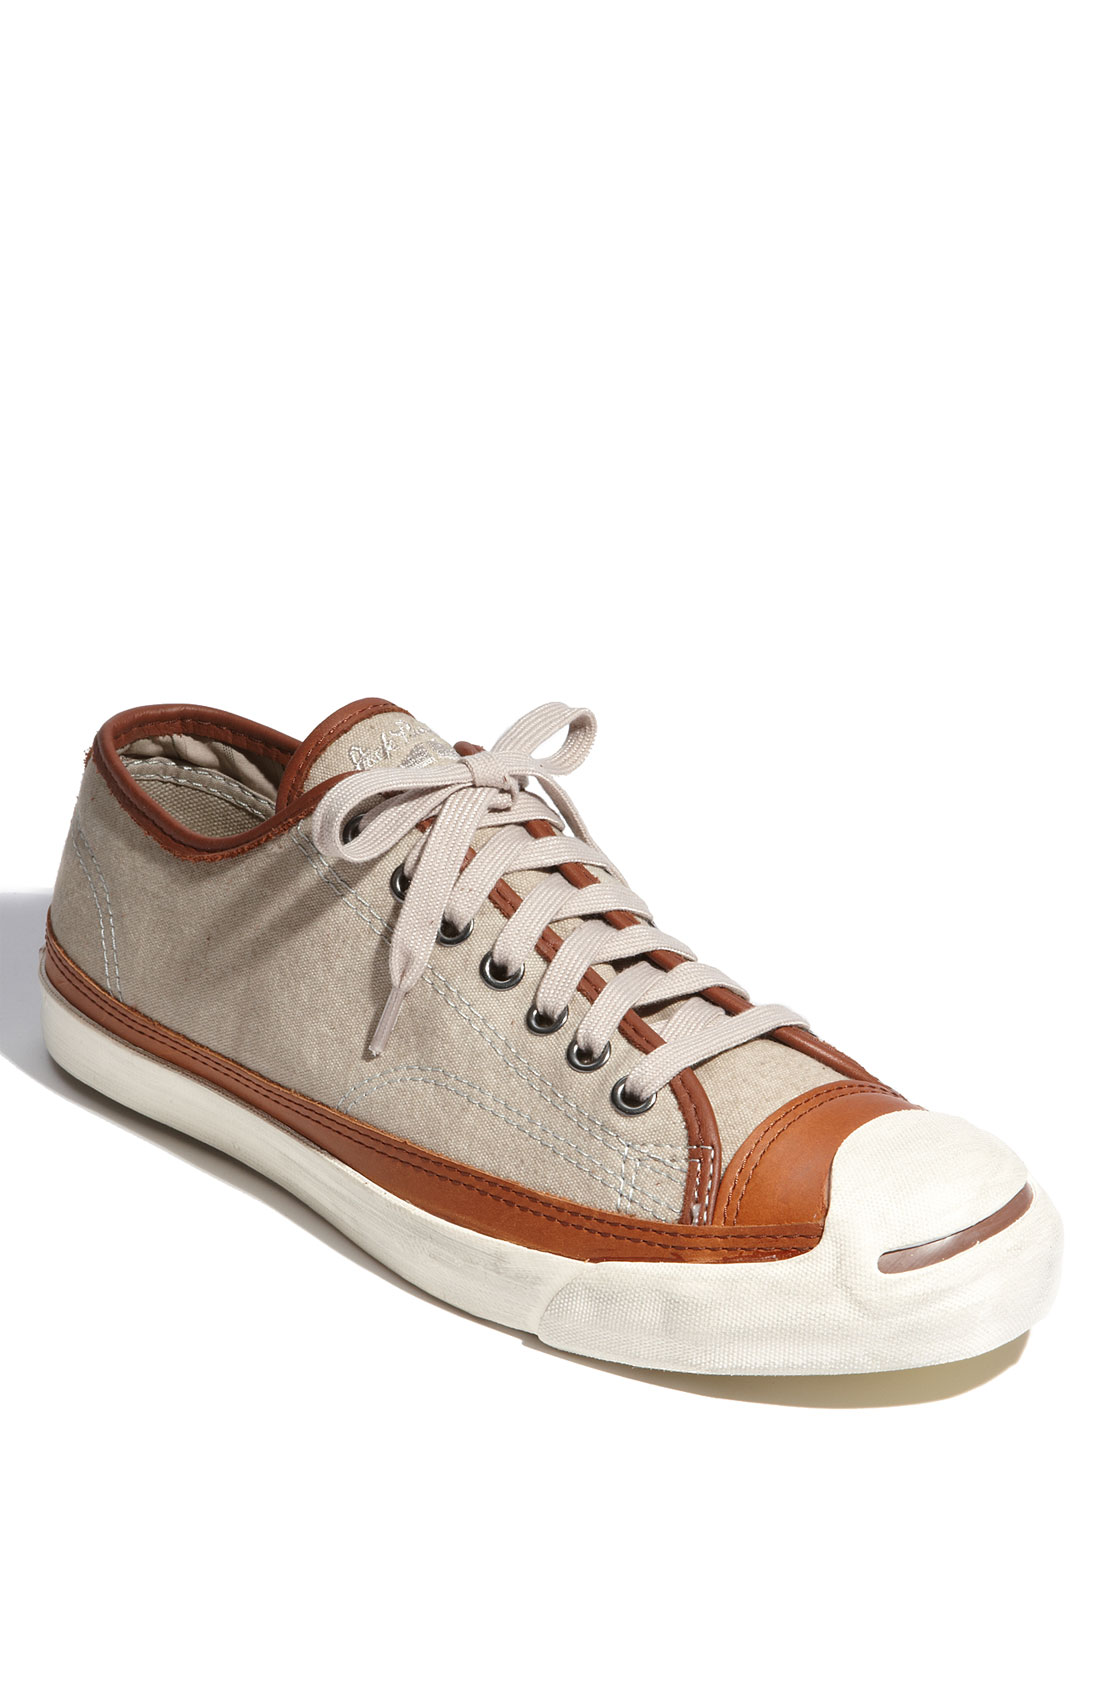 Diesel Leather Tennis Shoes